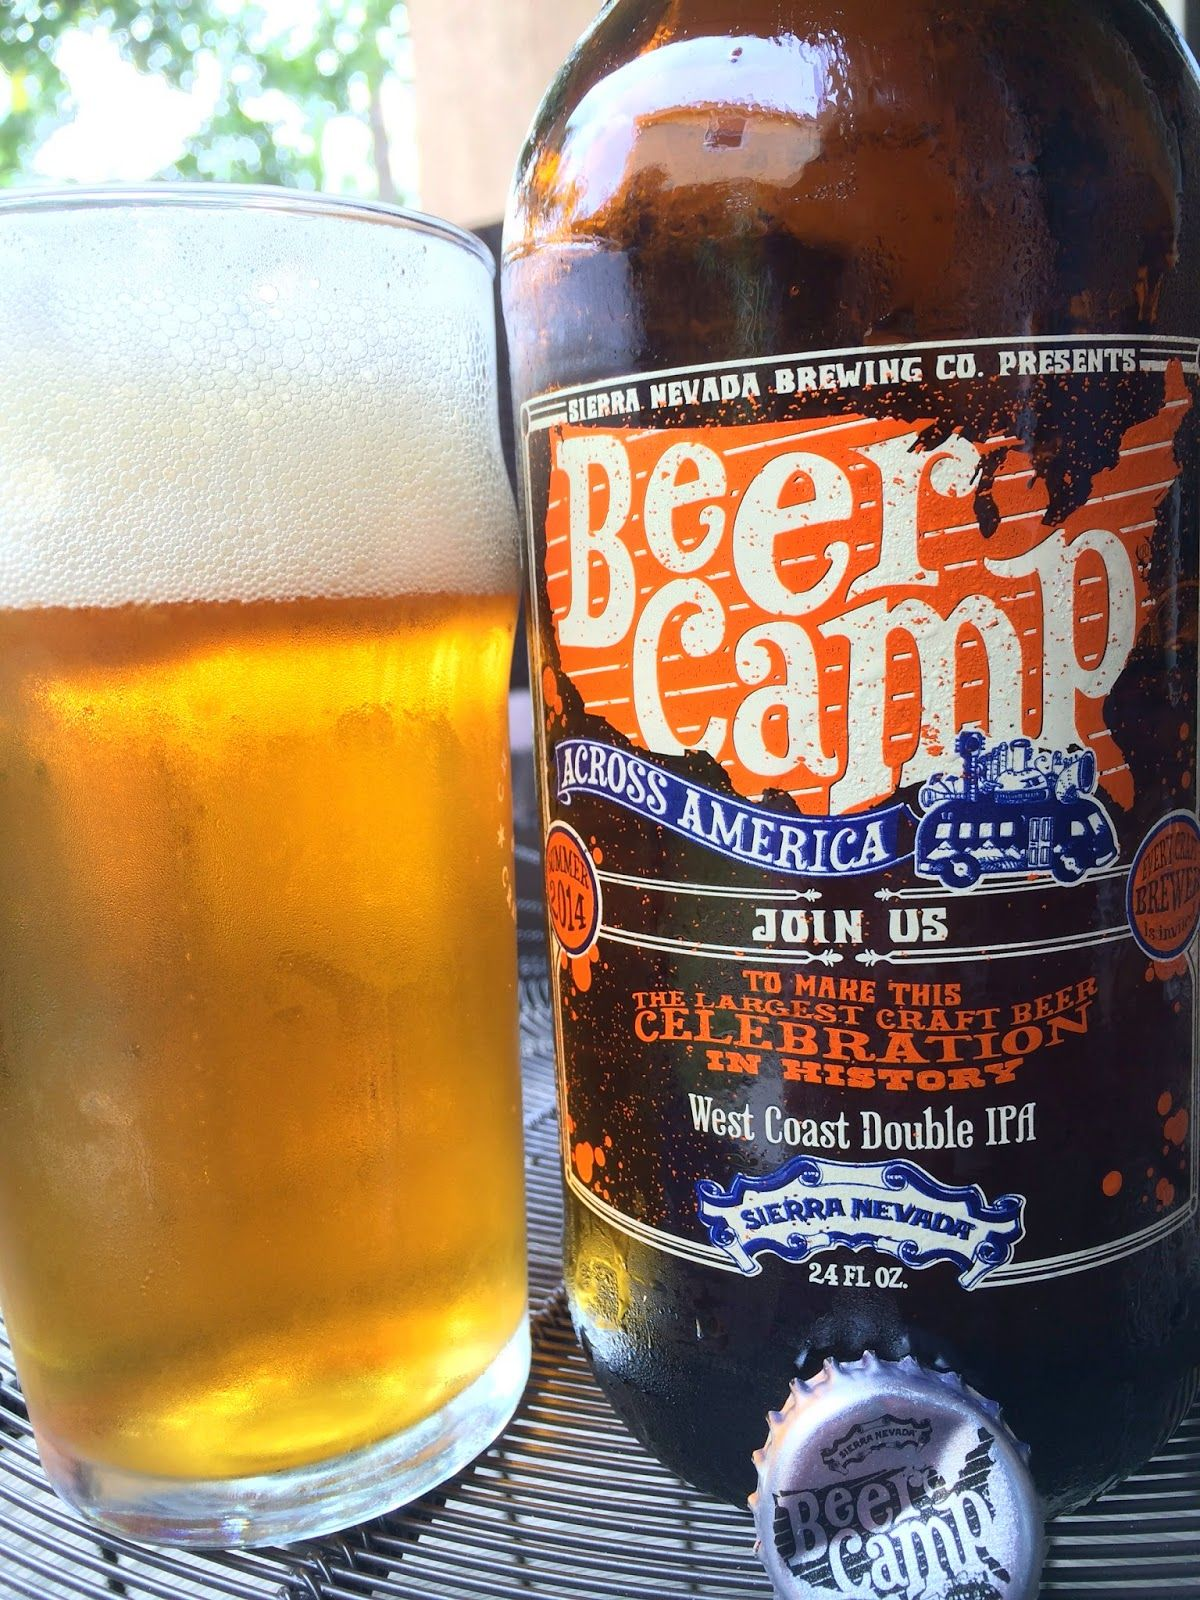 Beer Camp Across America West Coast Double IPA -- Citrus and pine aroma with a light fruitiness, not very powerful though. Orange malty sweet flavors start. Spicy, piney, lightly floral hops poke their way through next and actually take you all the way to the finish, where you will taste a little alcohol. Very simple beer.